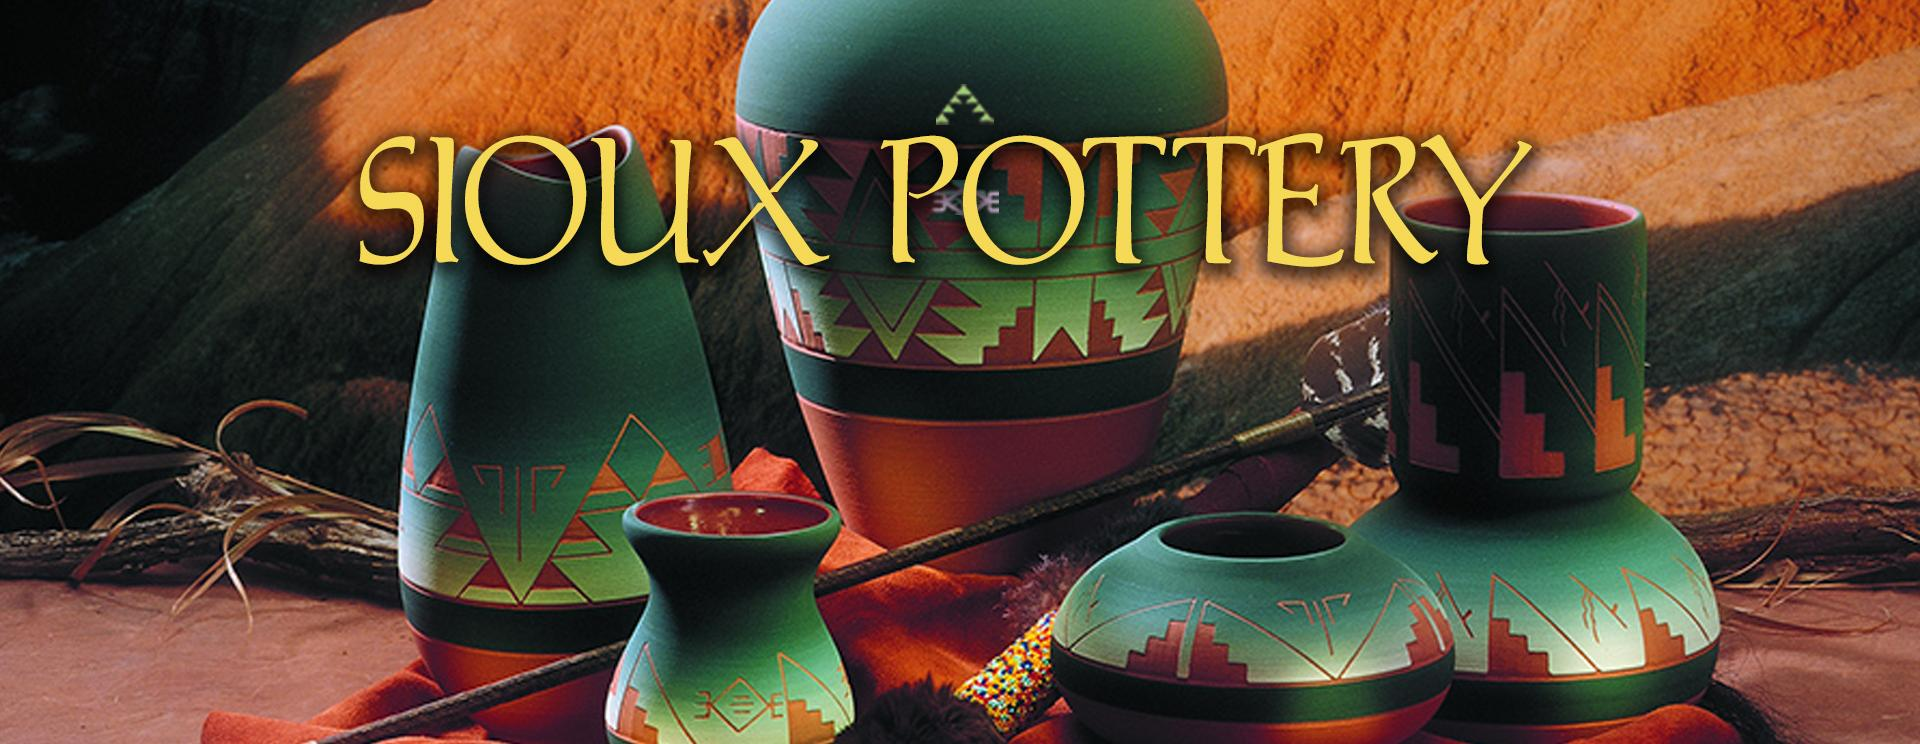 Sioux Pottery